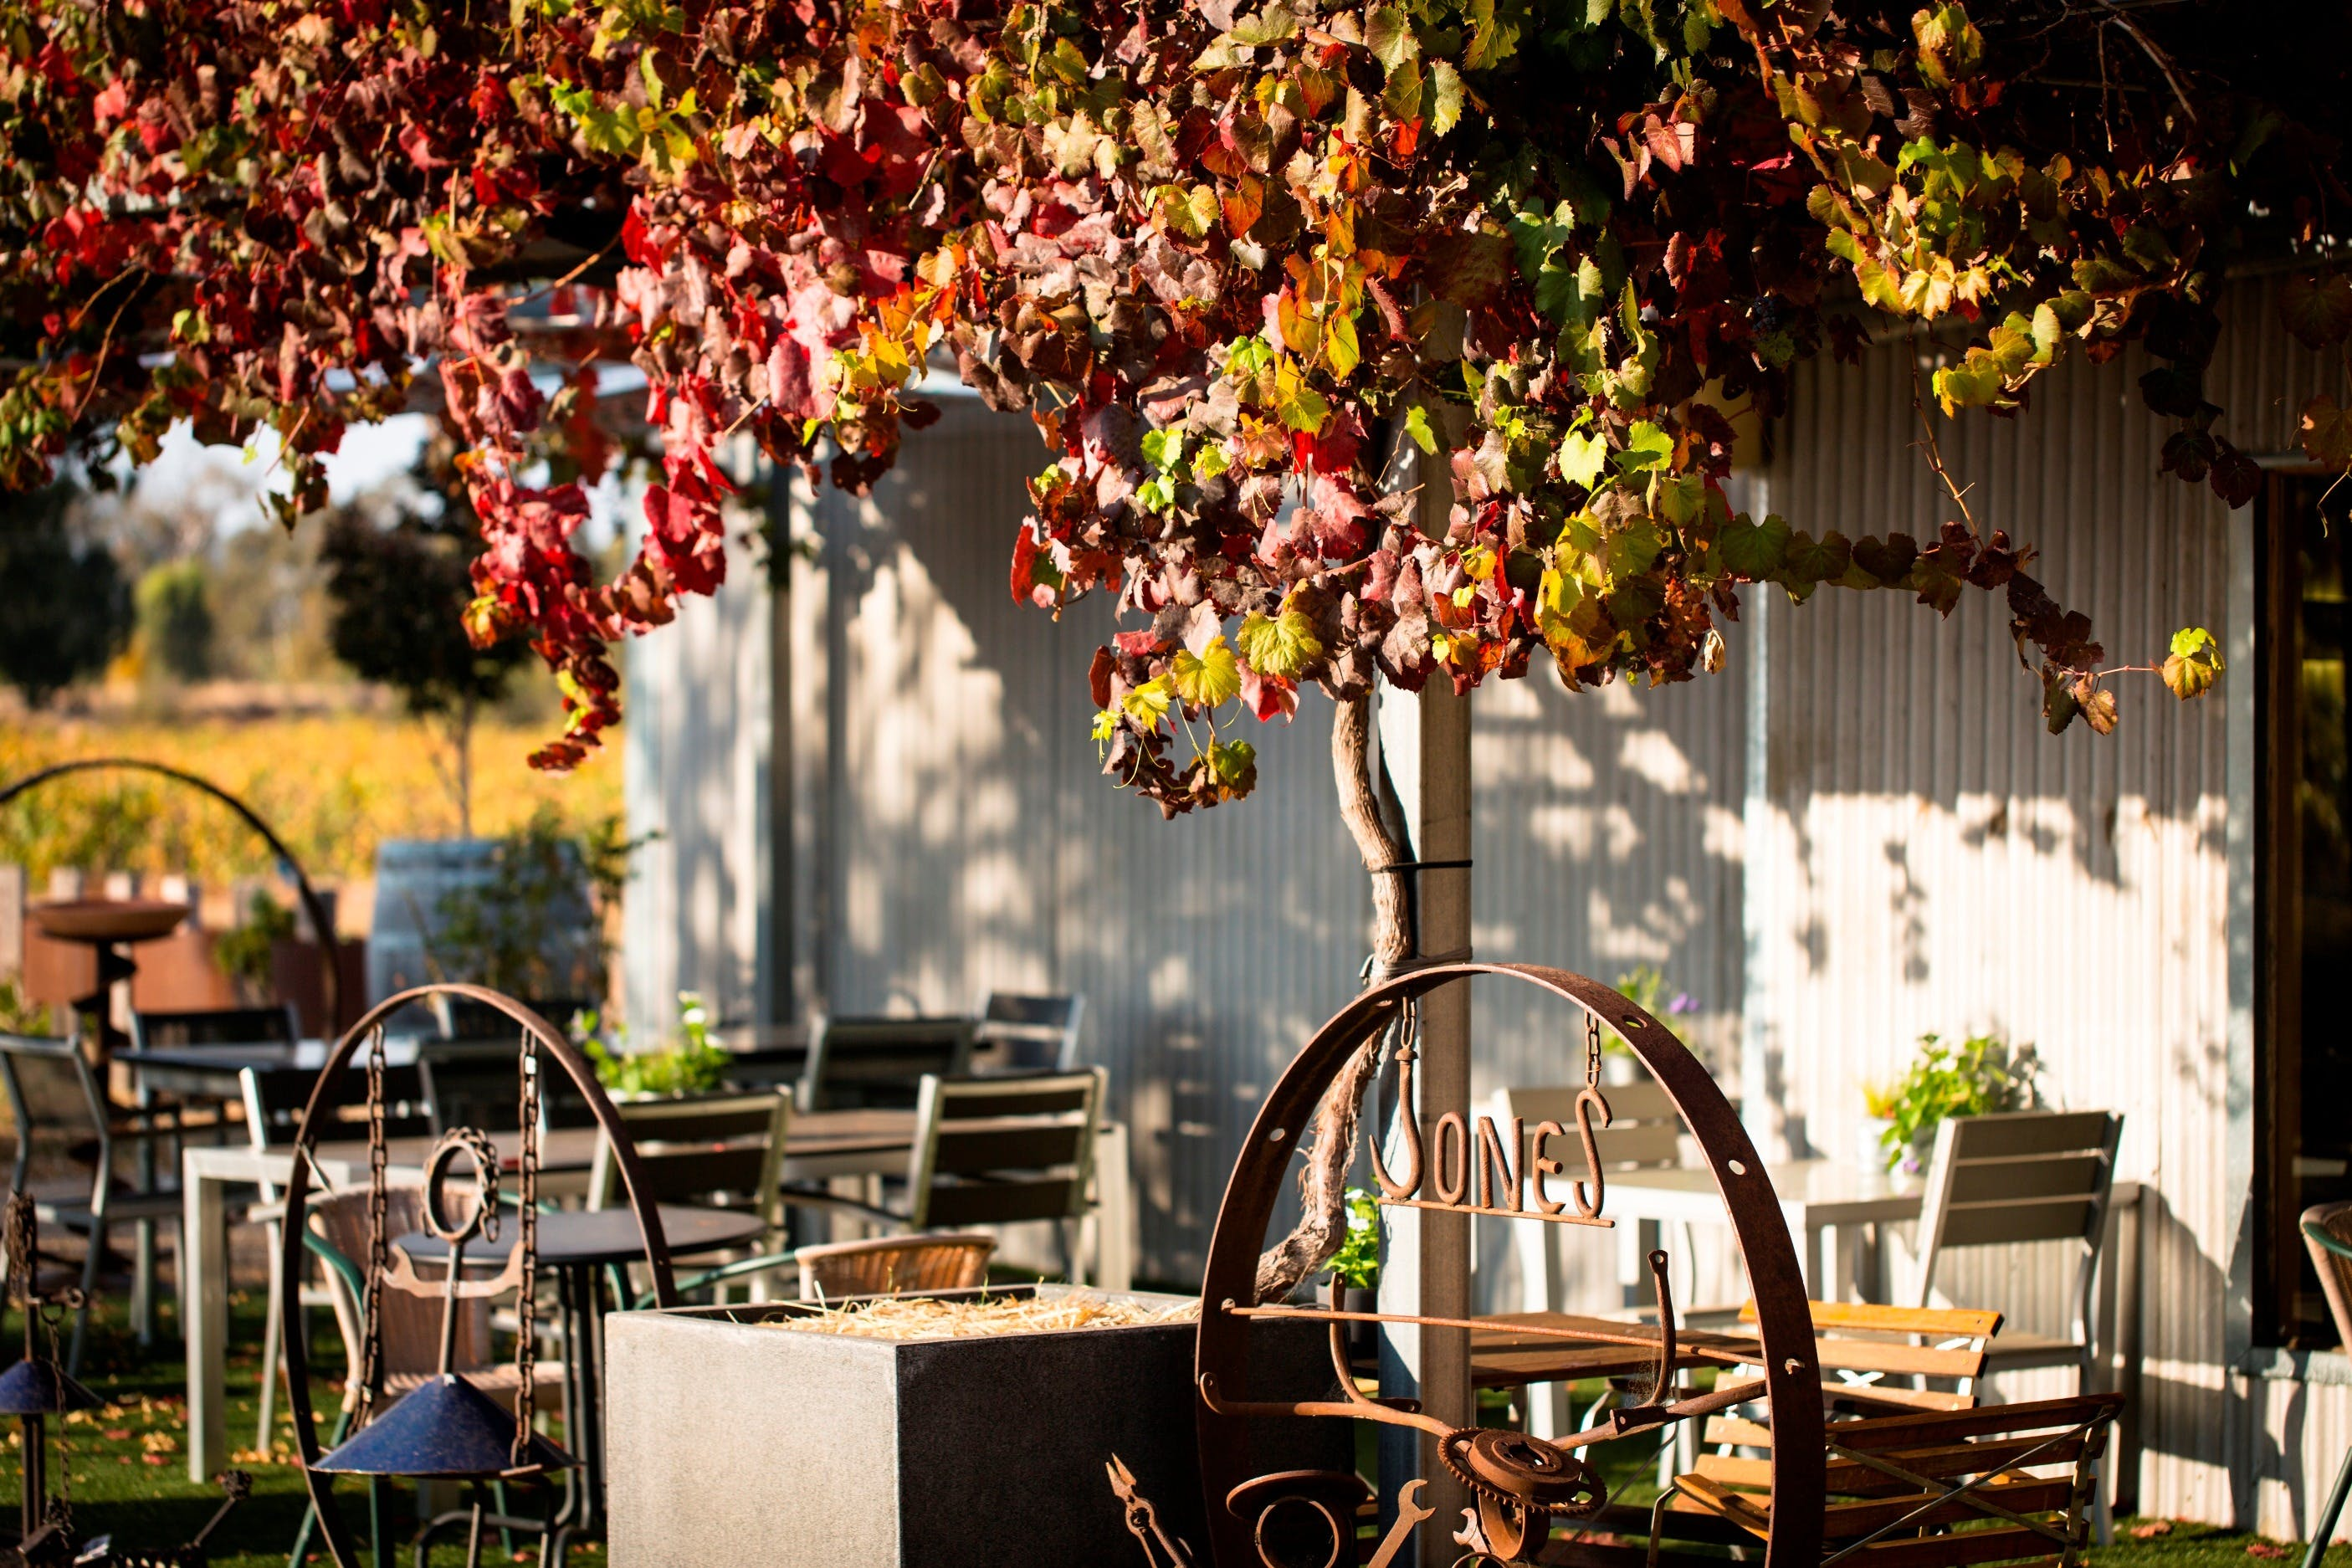 Jones Winery  Vineyard - Food Delivery Shop